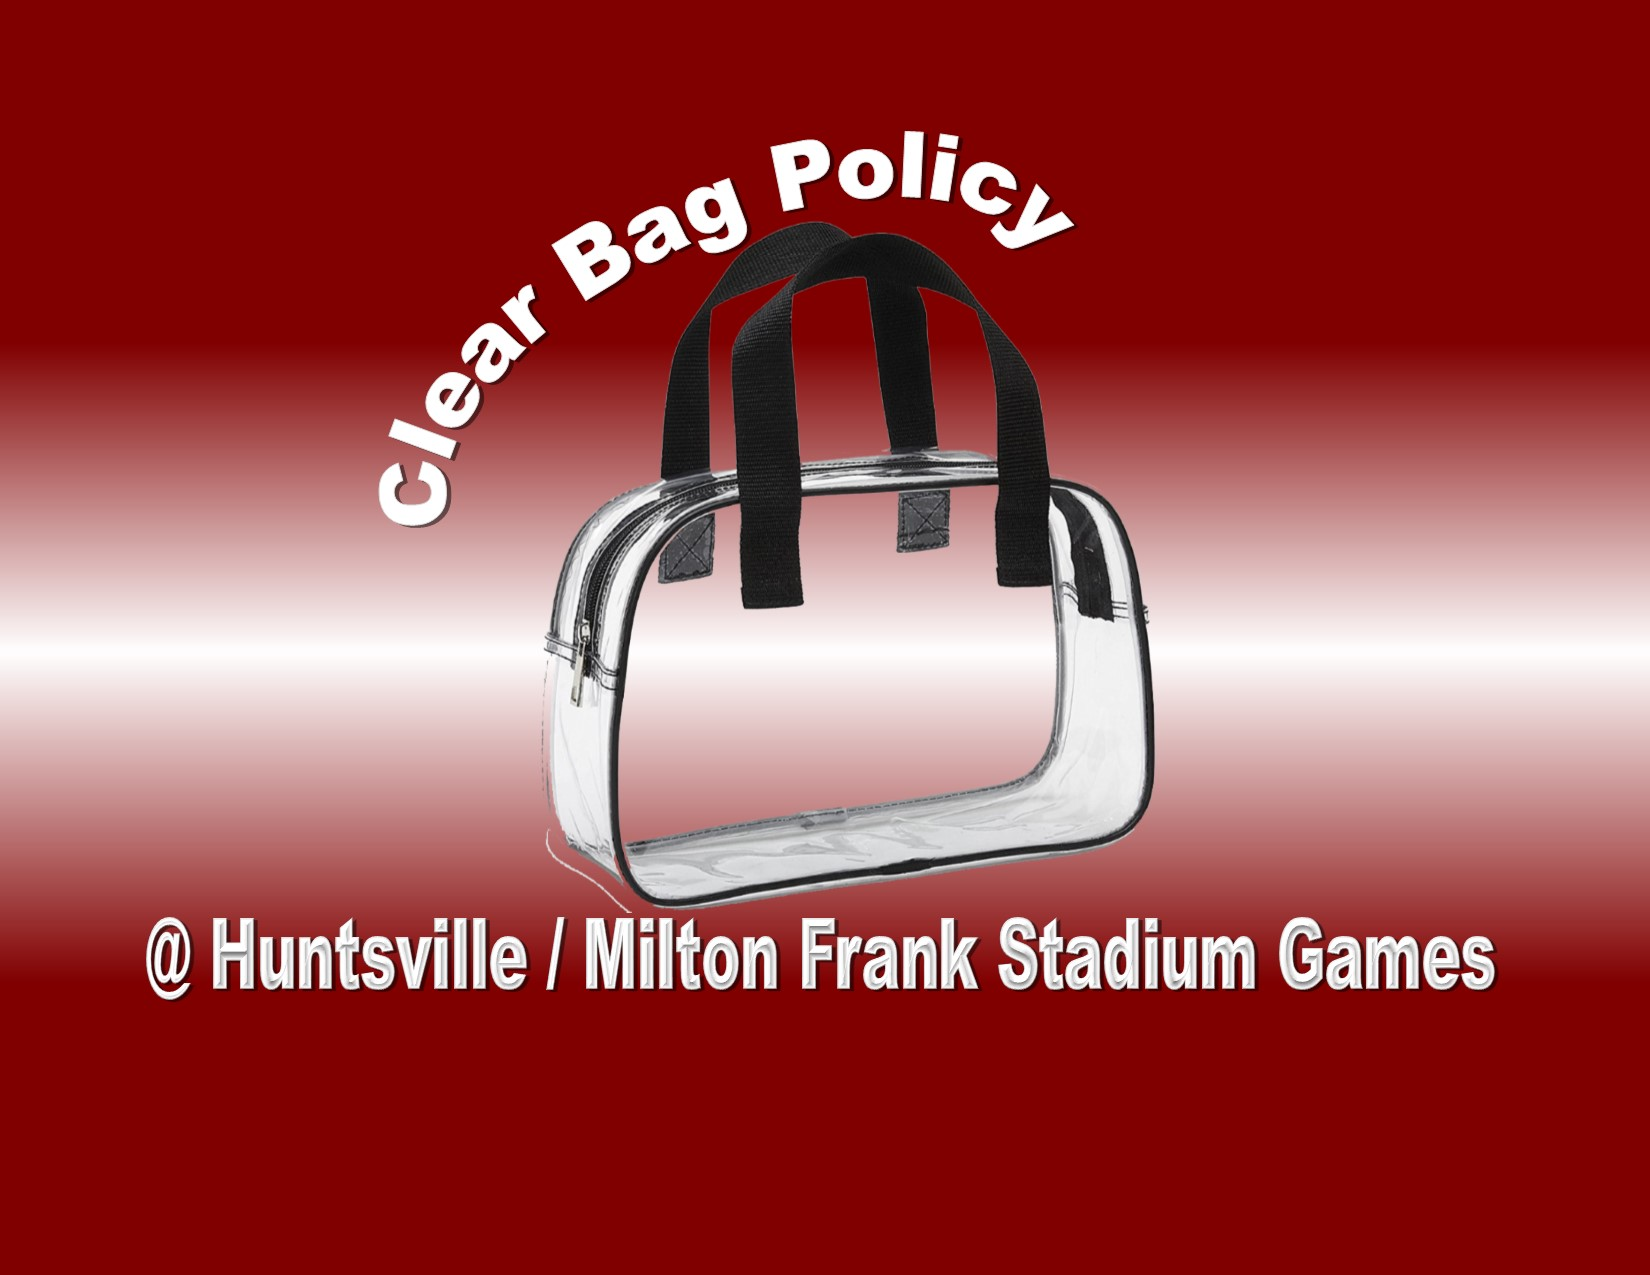 CLEAR BAG POLICY FOR FRIDAY, OCTOBER 19th and 25th GAMES